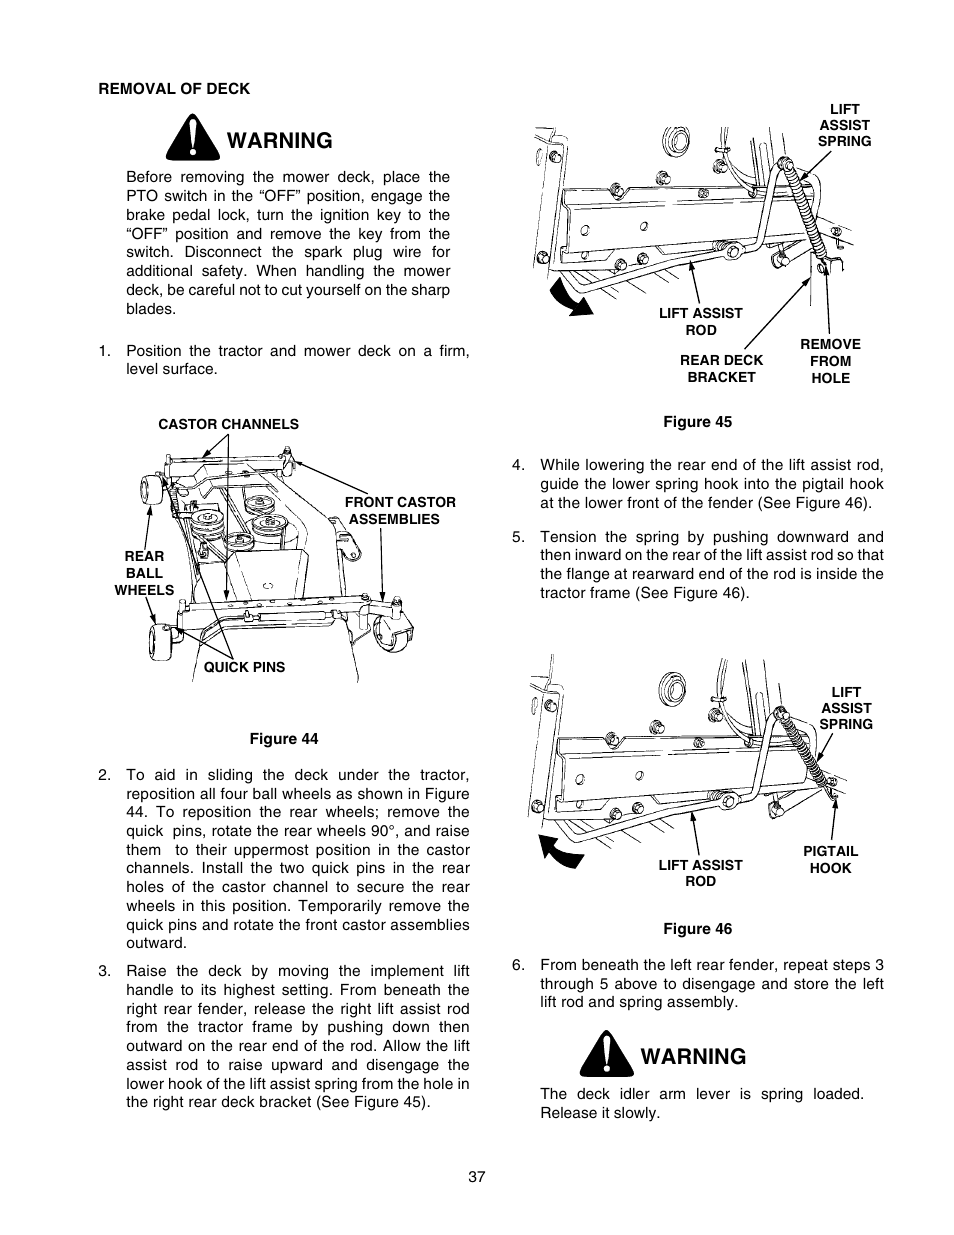 2206 Cub Cadet Wiring Diagram Another Blog About Rotary Lift Switch Warning User Manual Page 37 60 Original Mode Rh Manualsdir Com